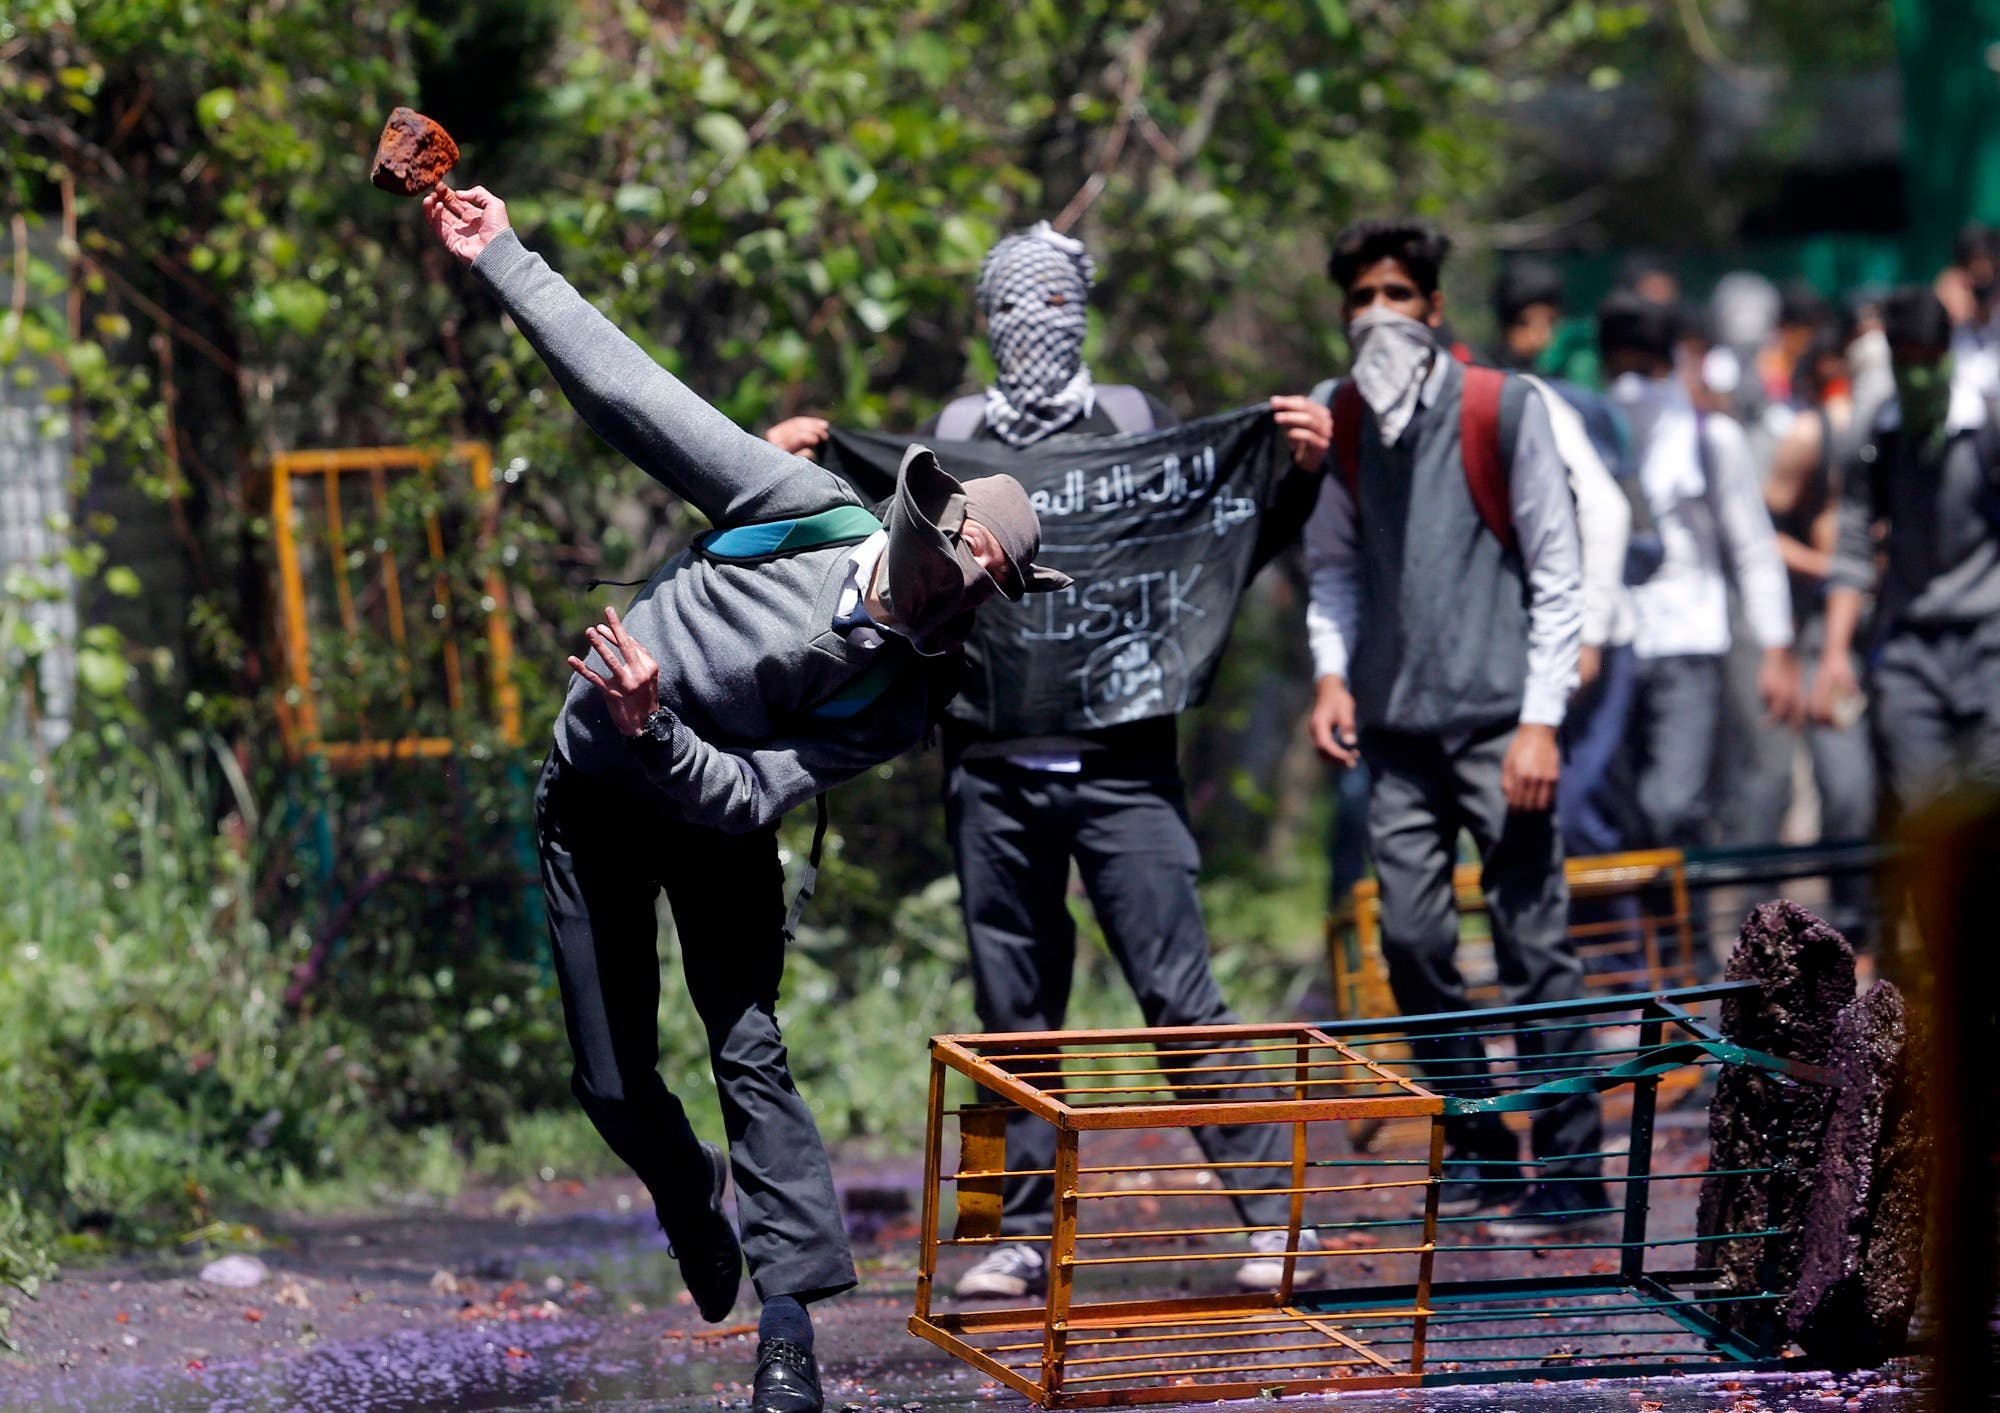 A Kashmiri student throws a brick at police as they clash in Srinagar, Indian controlled Kashmir, Monday, April 24, 2017. (AP)